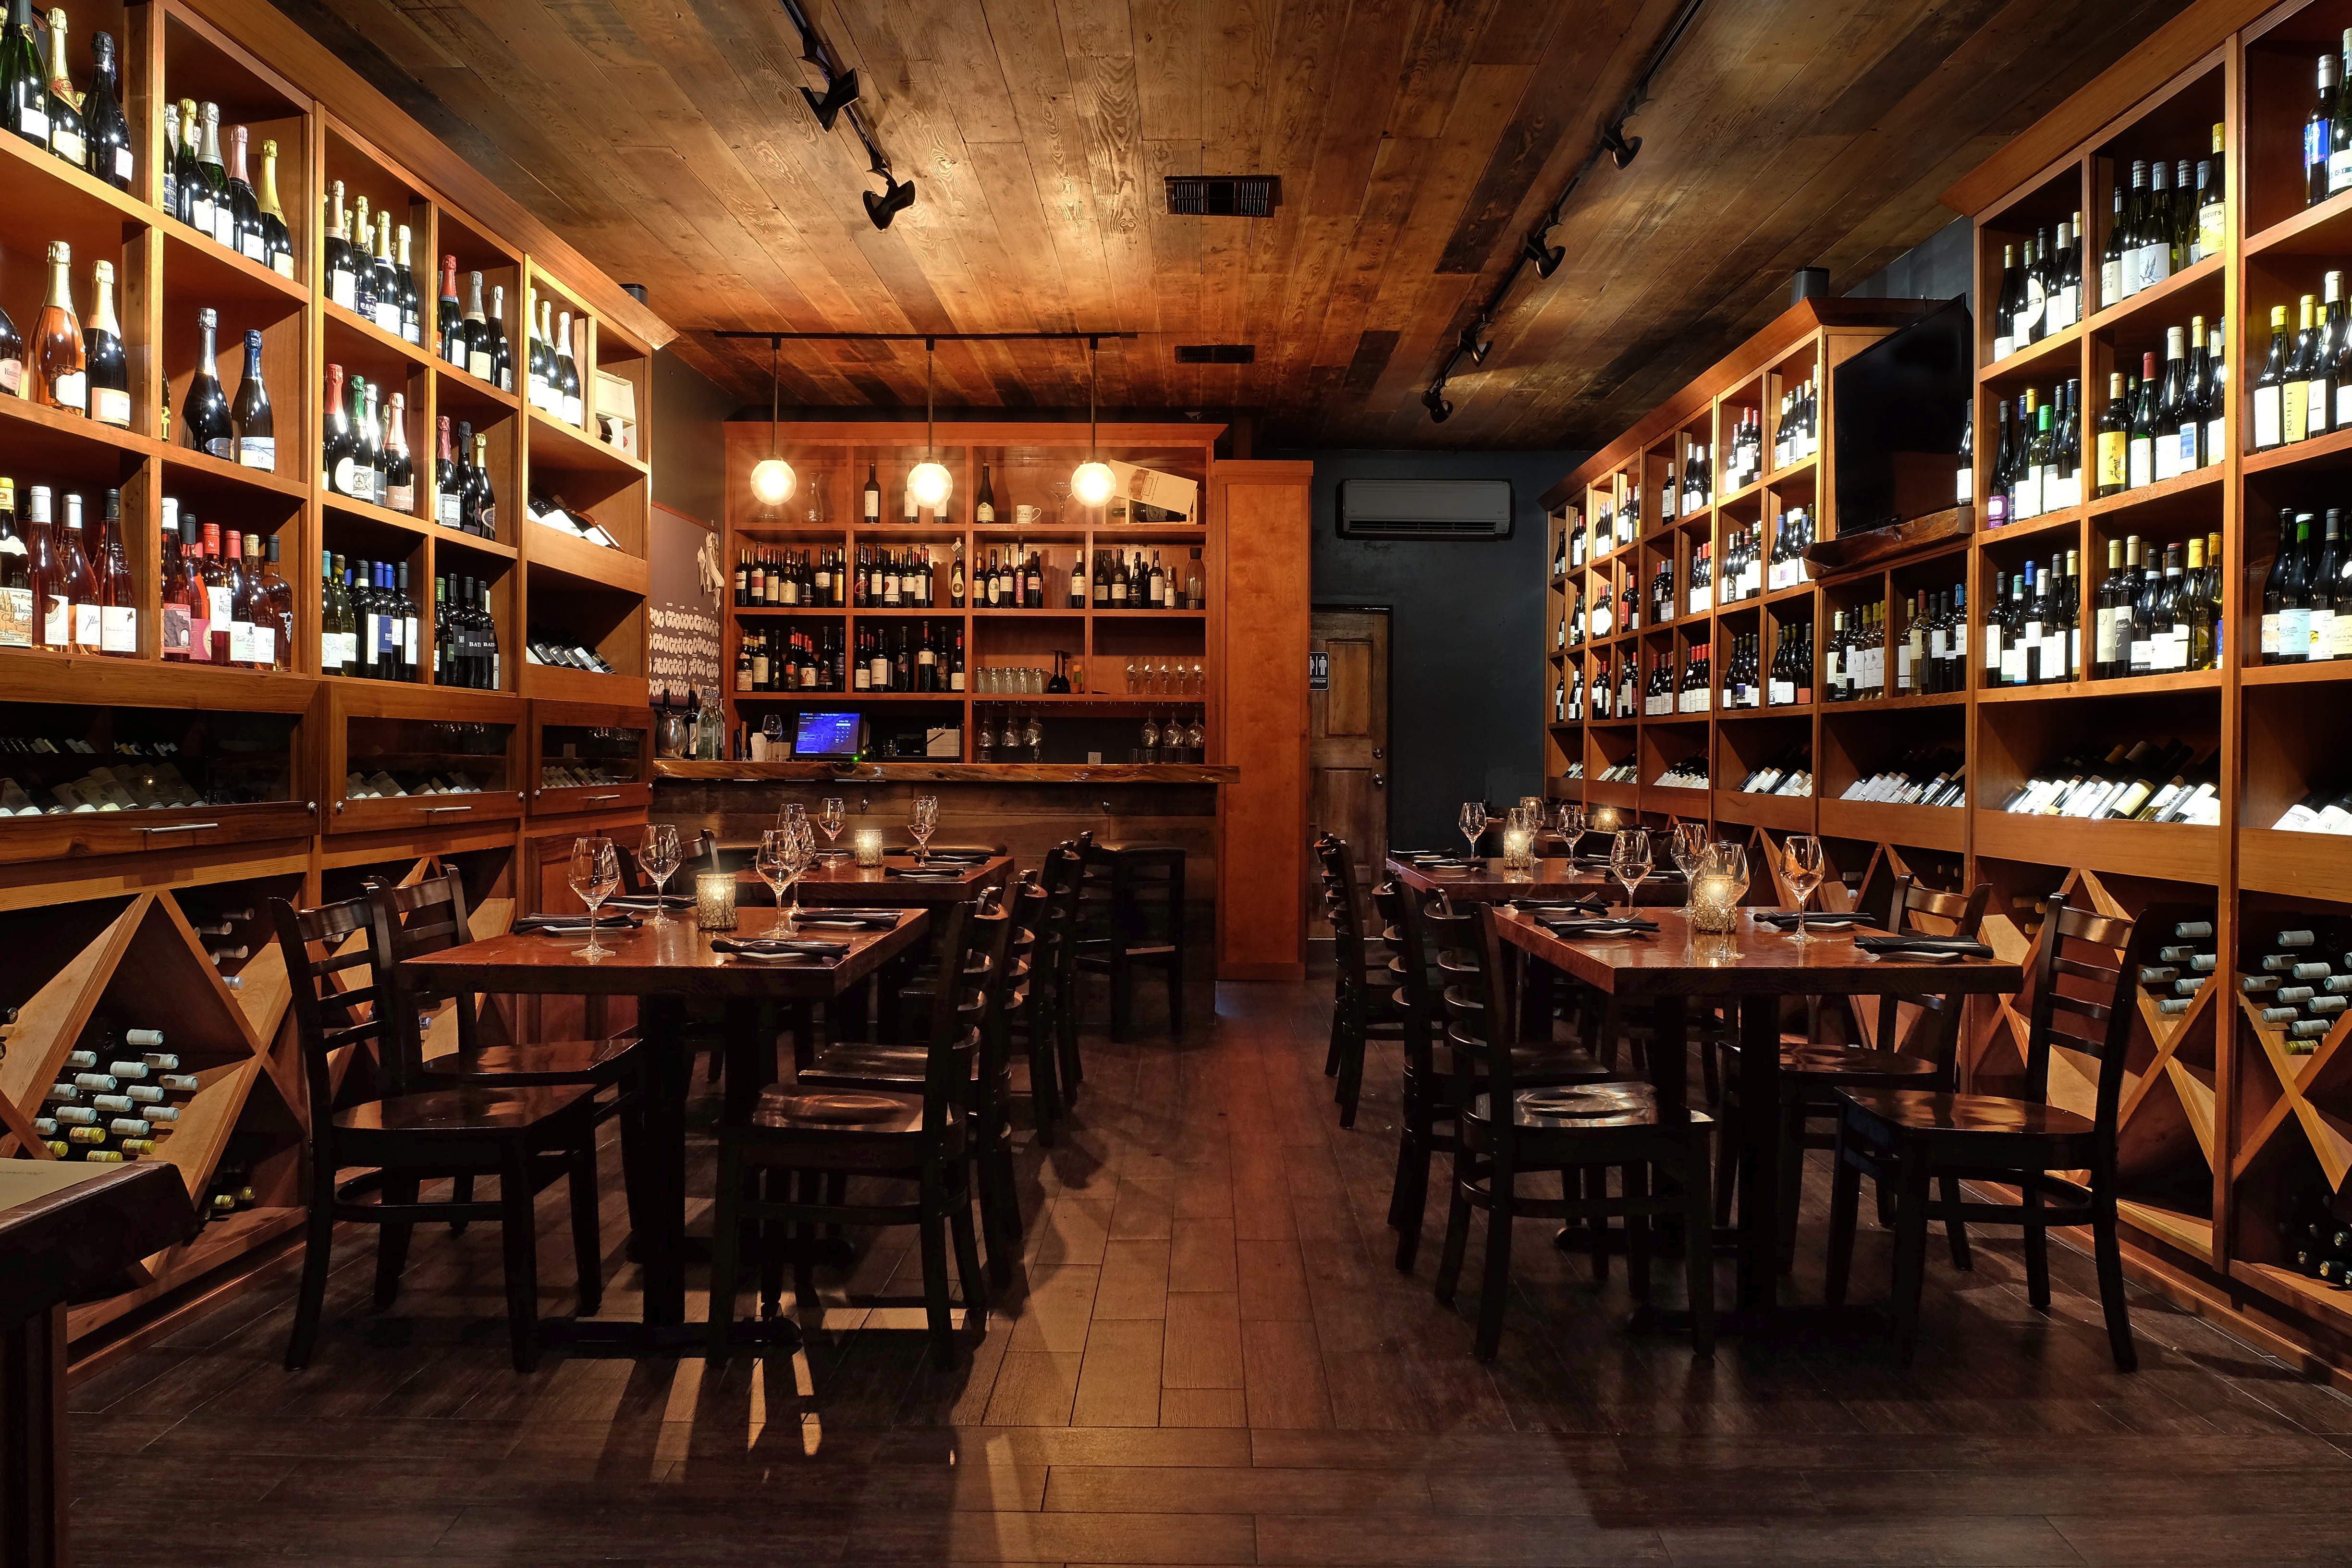 Photo #8 Wine Room at The Barrel Room